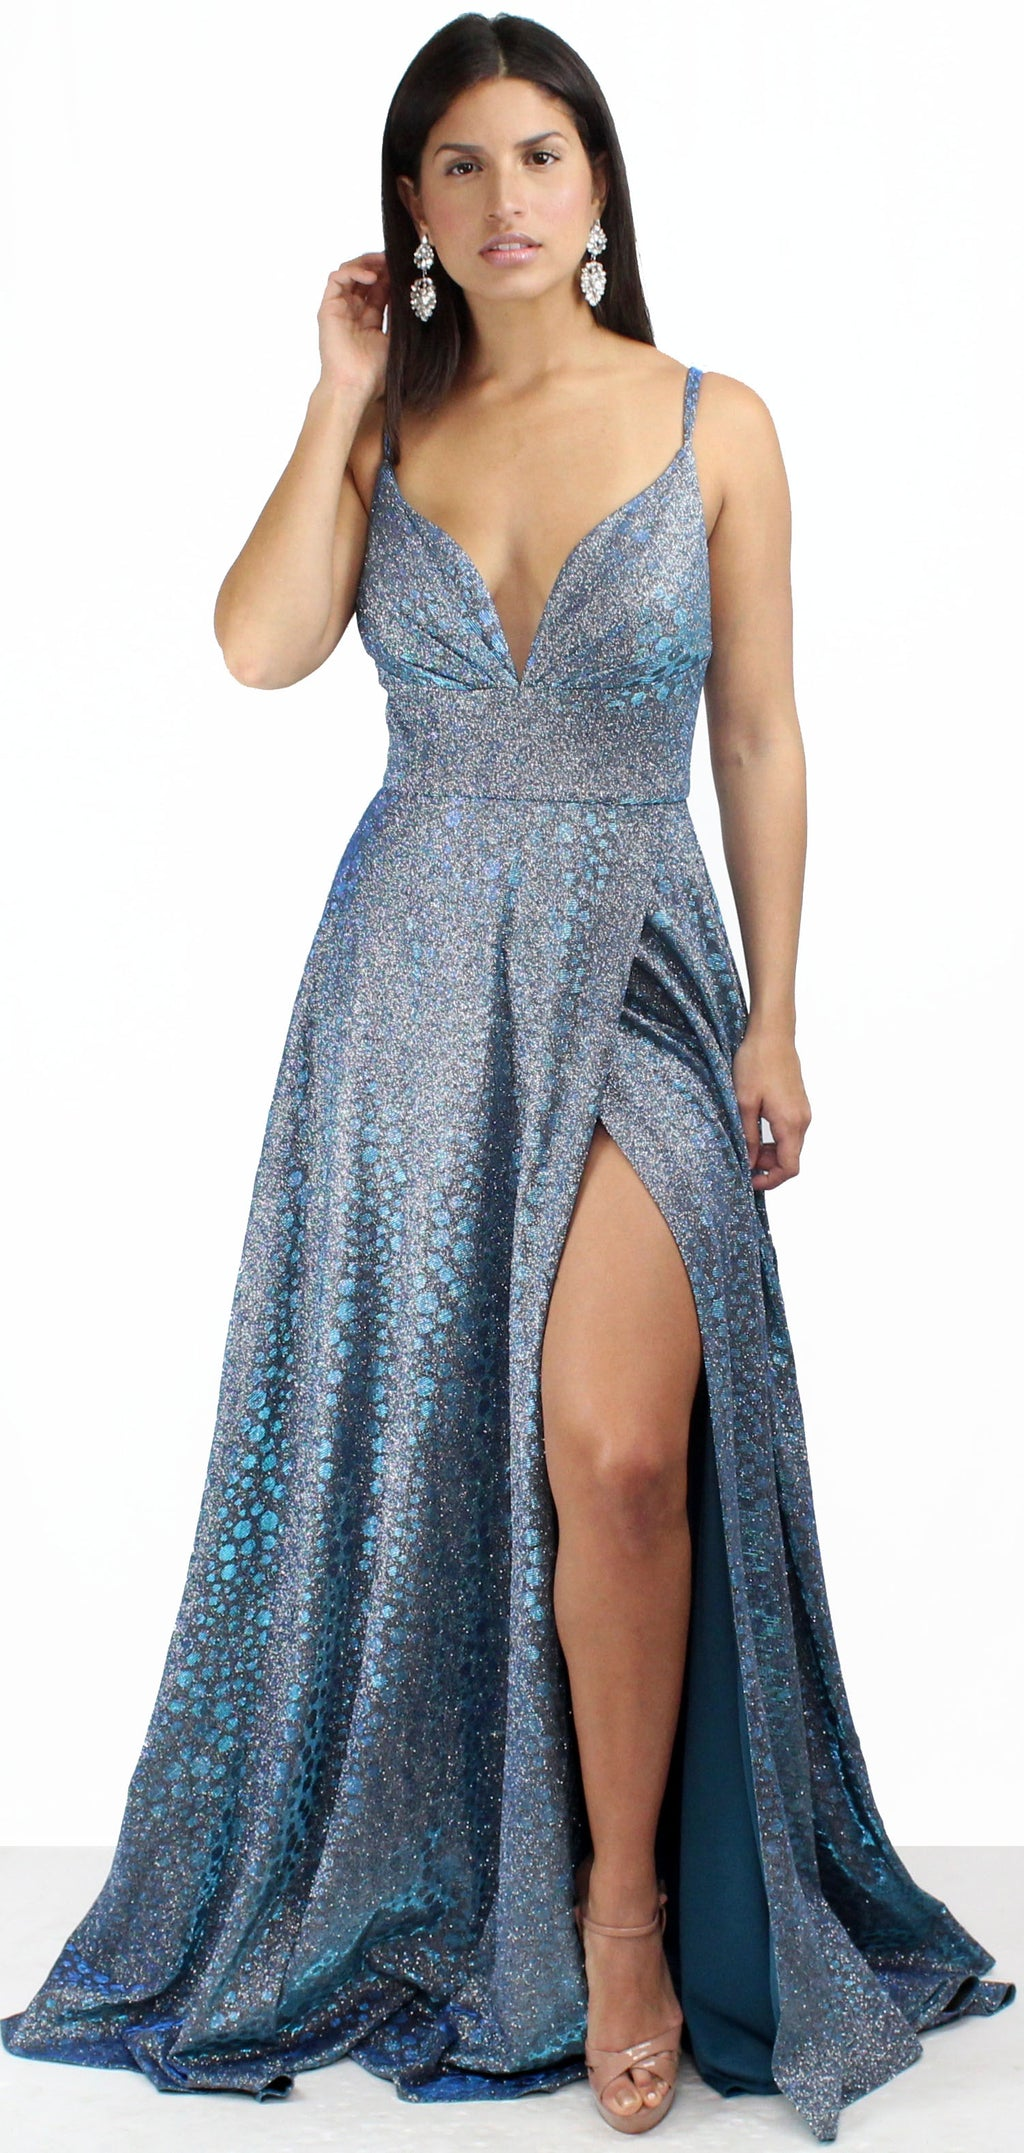 So Enchanted Holographic Blue Formal Gown